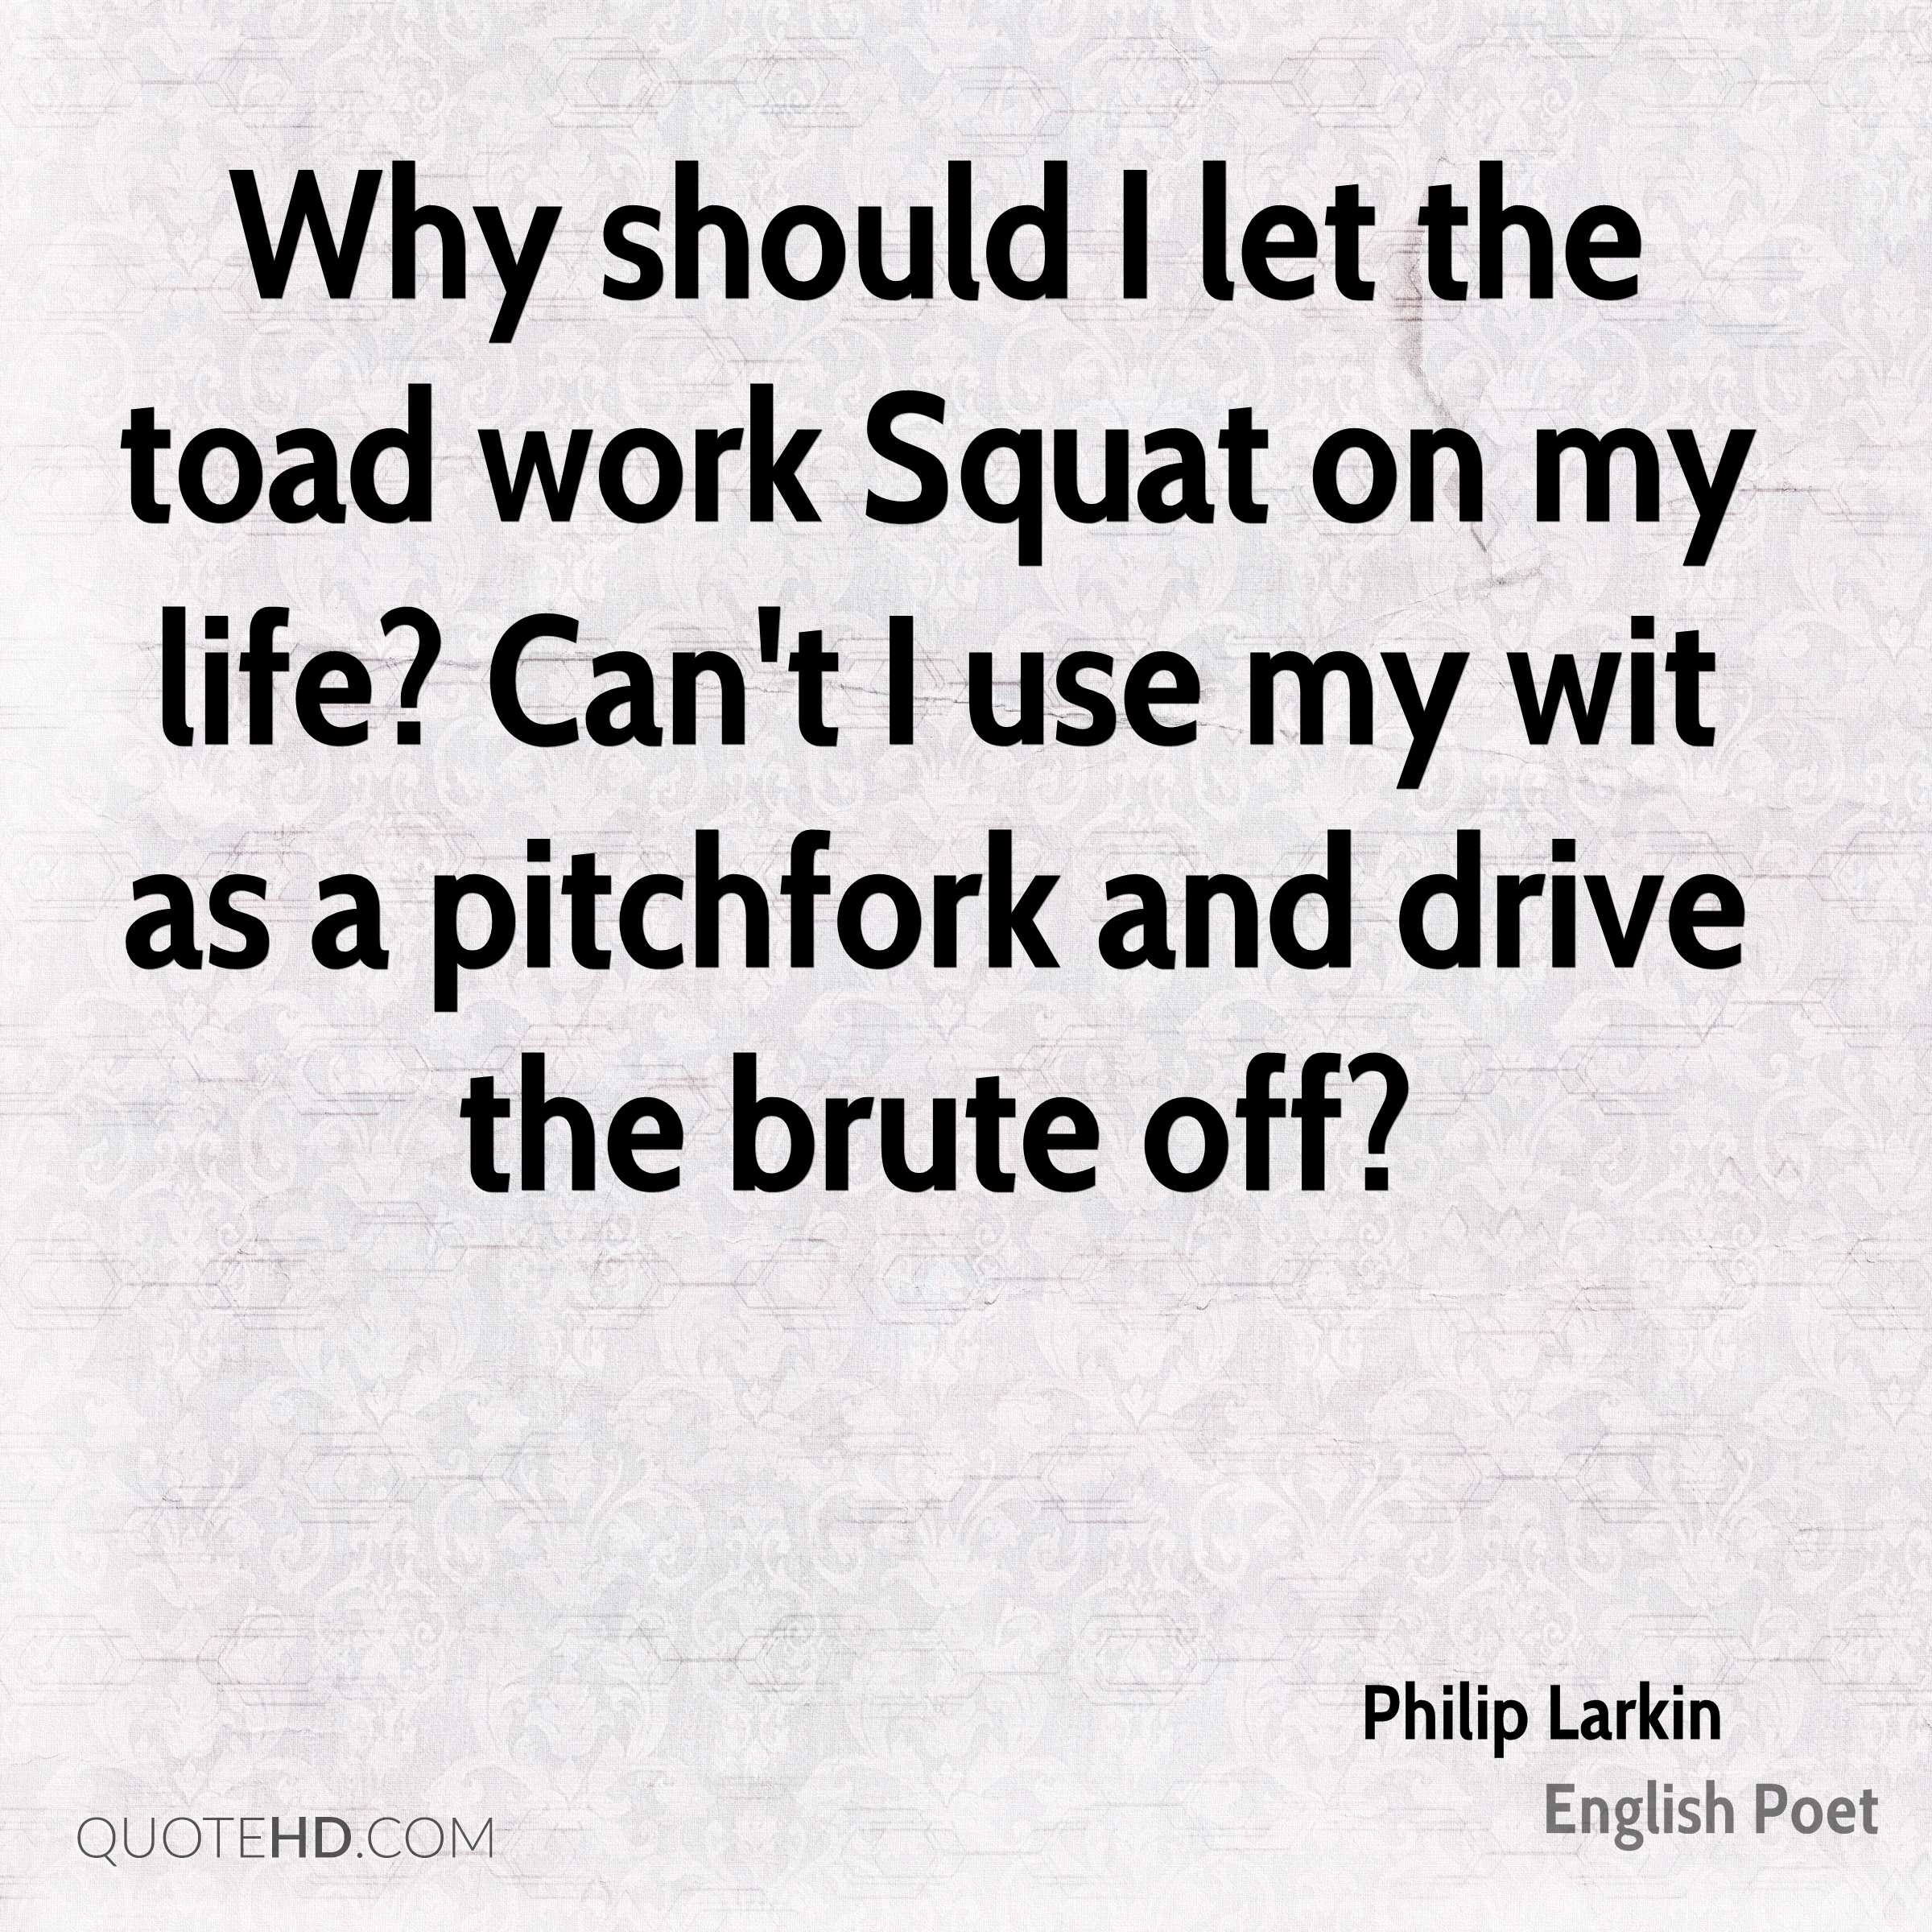 Why Should I Let The Toad Work Squat On My Life? Canu0027t I